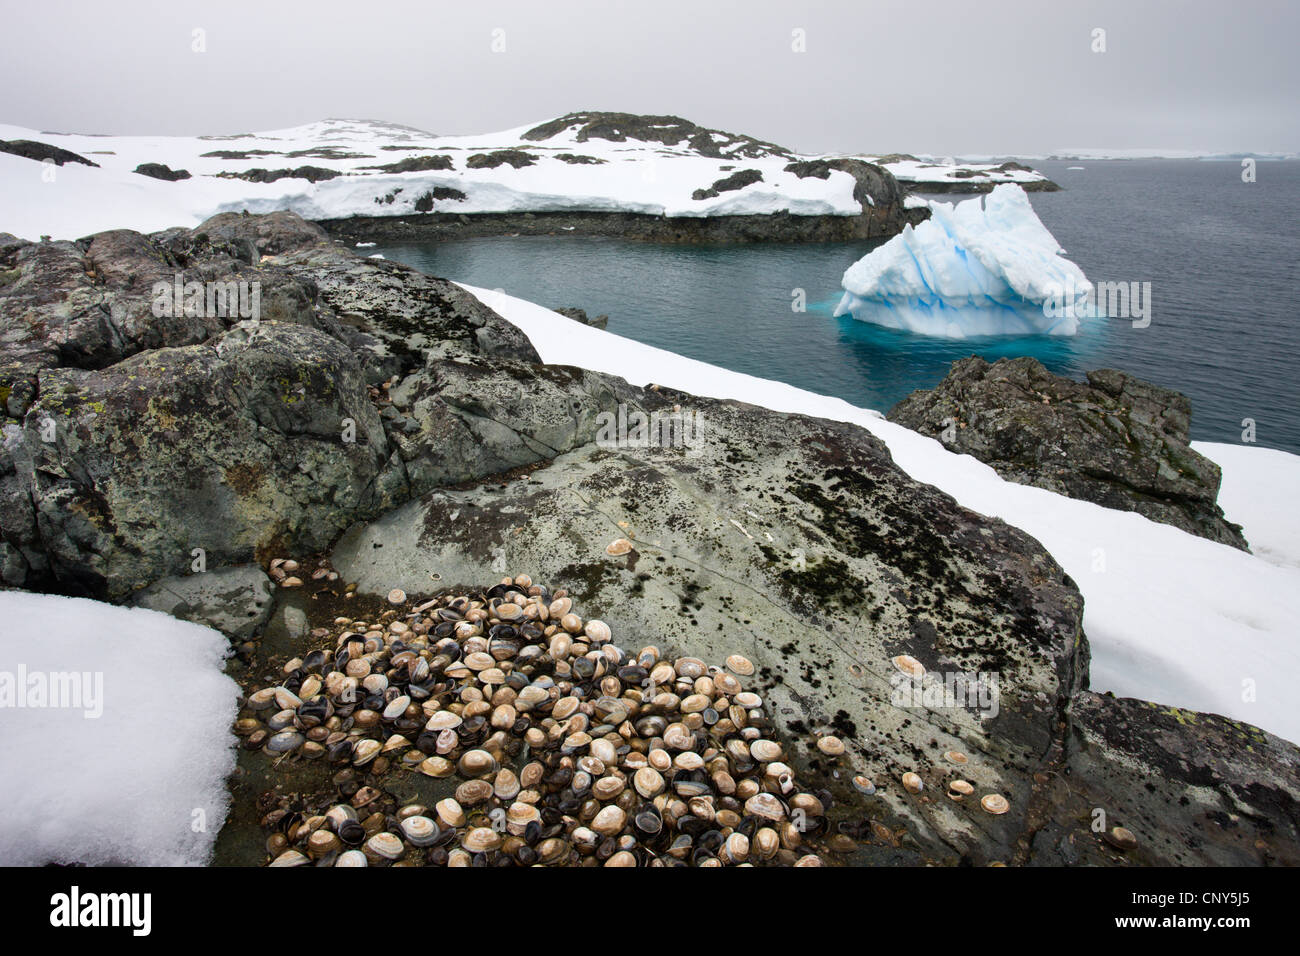 Limpet shells on the rocks at White Island, in the Antarctic Peninsula, Antarctica. December 2007 - Stock Image